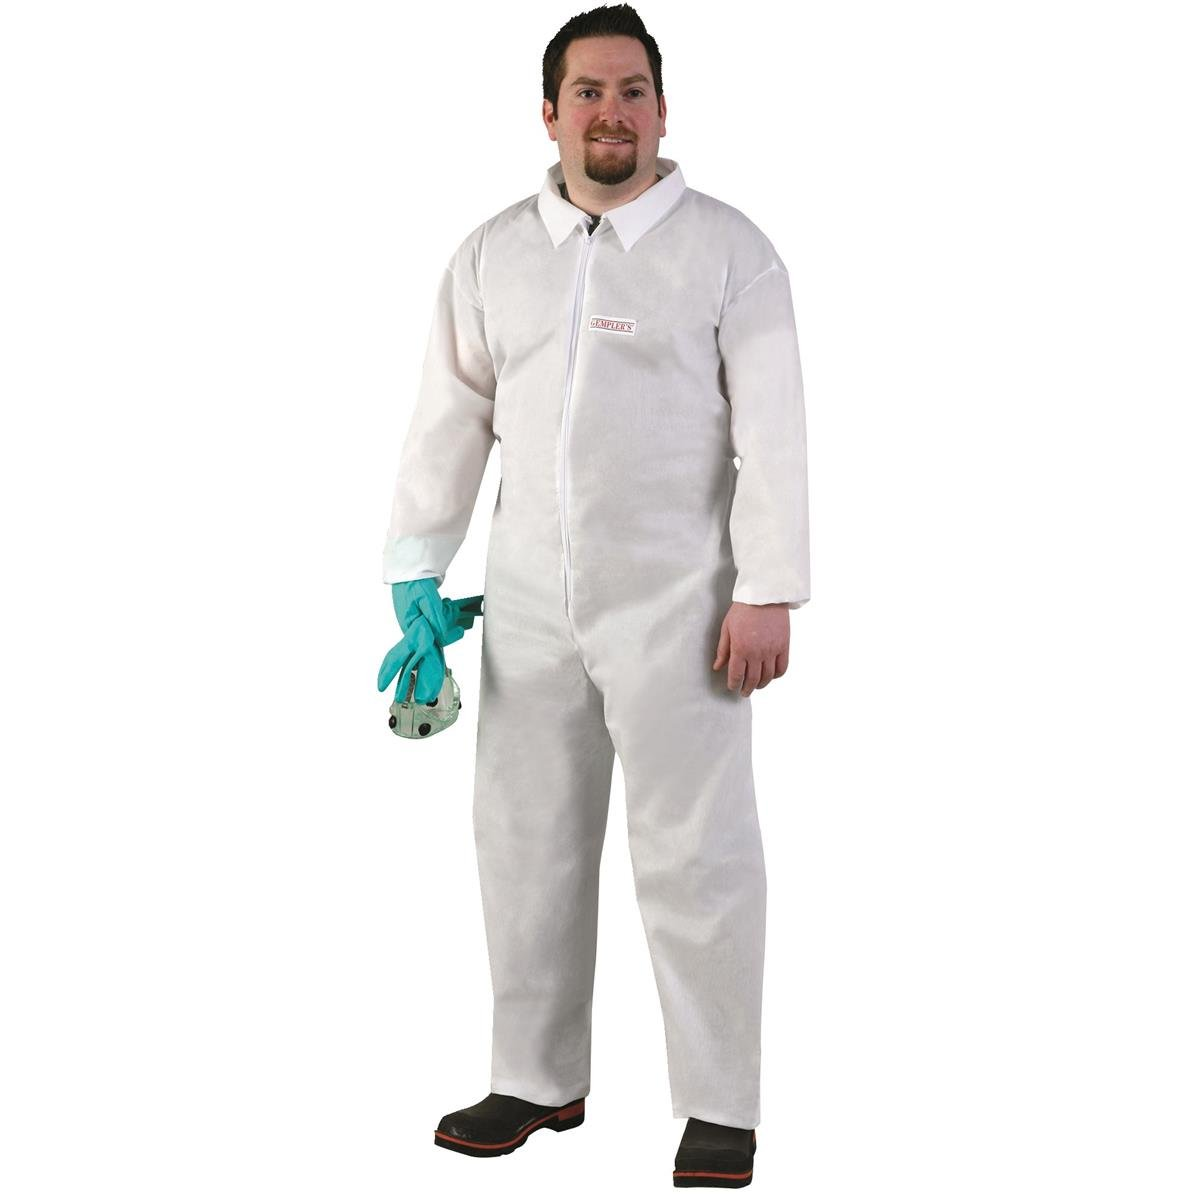 Gempler's 165563 General Purpose Coveralls, Size Large